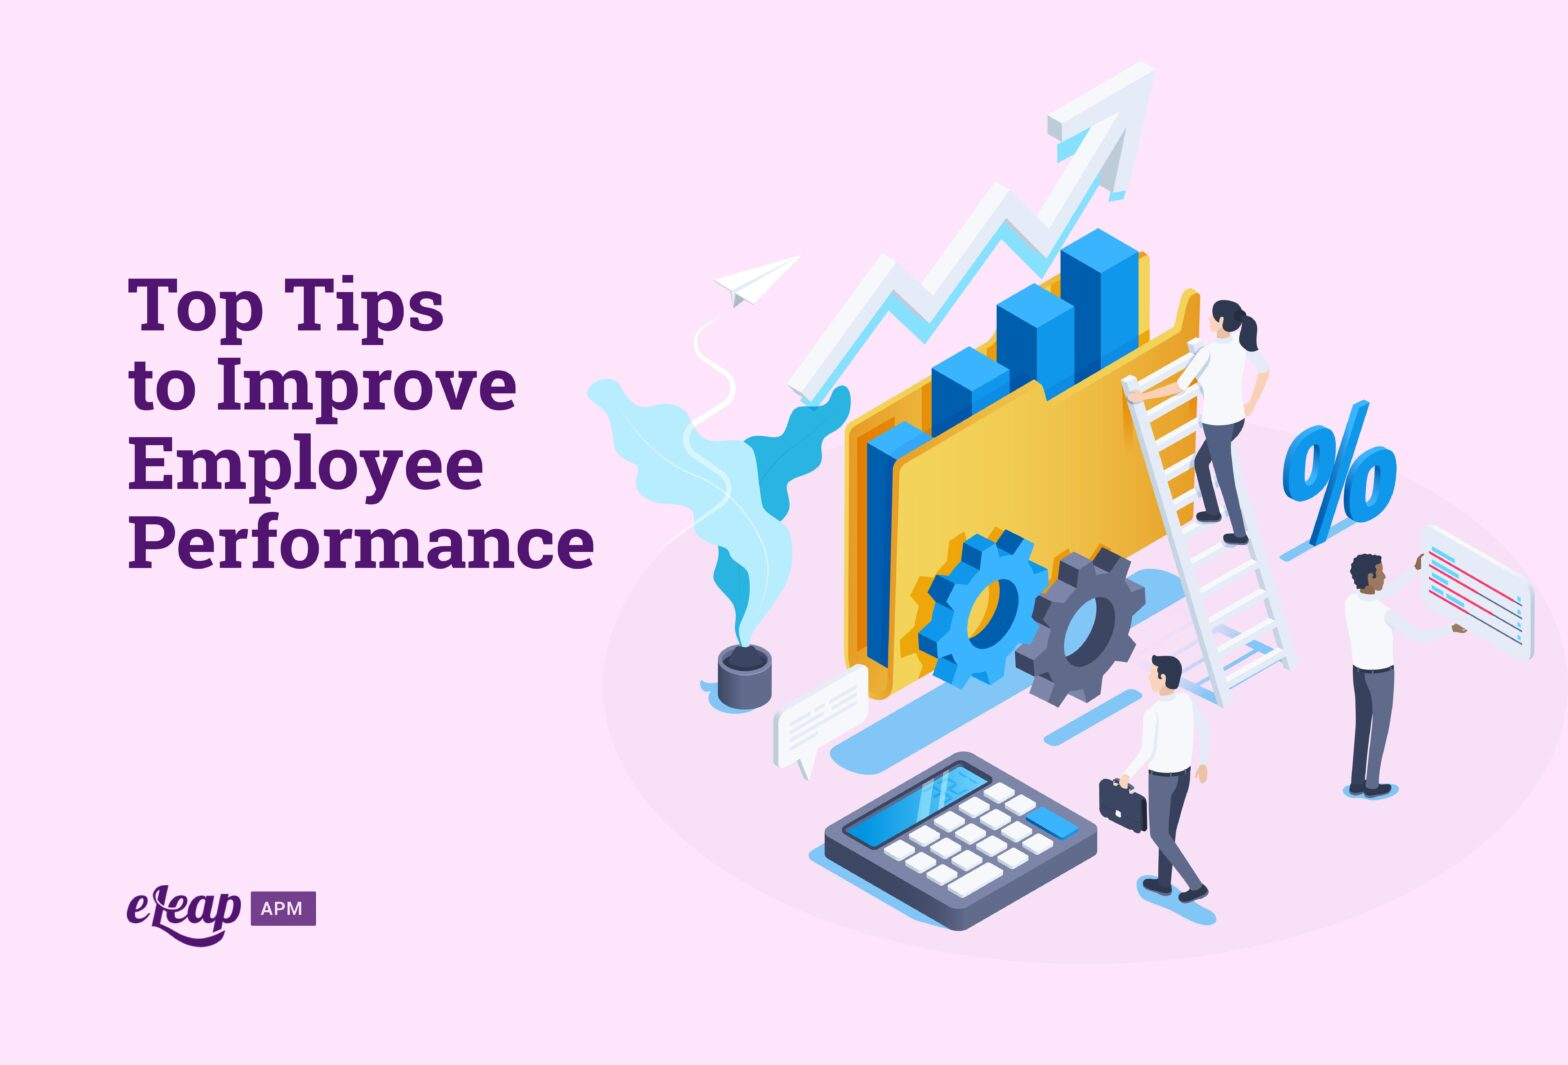 Top Tips to Improve Employee Performance